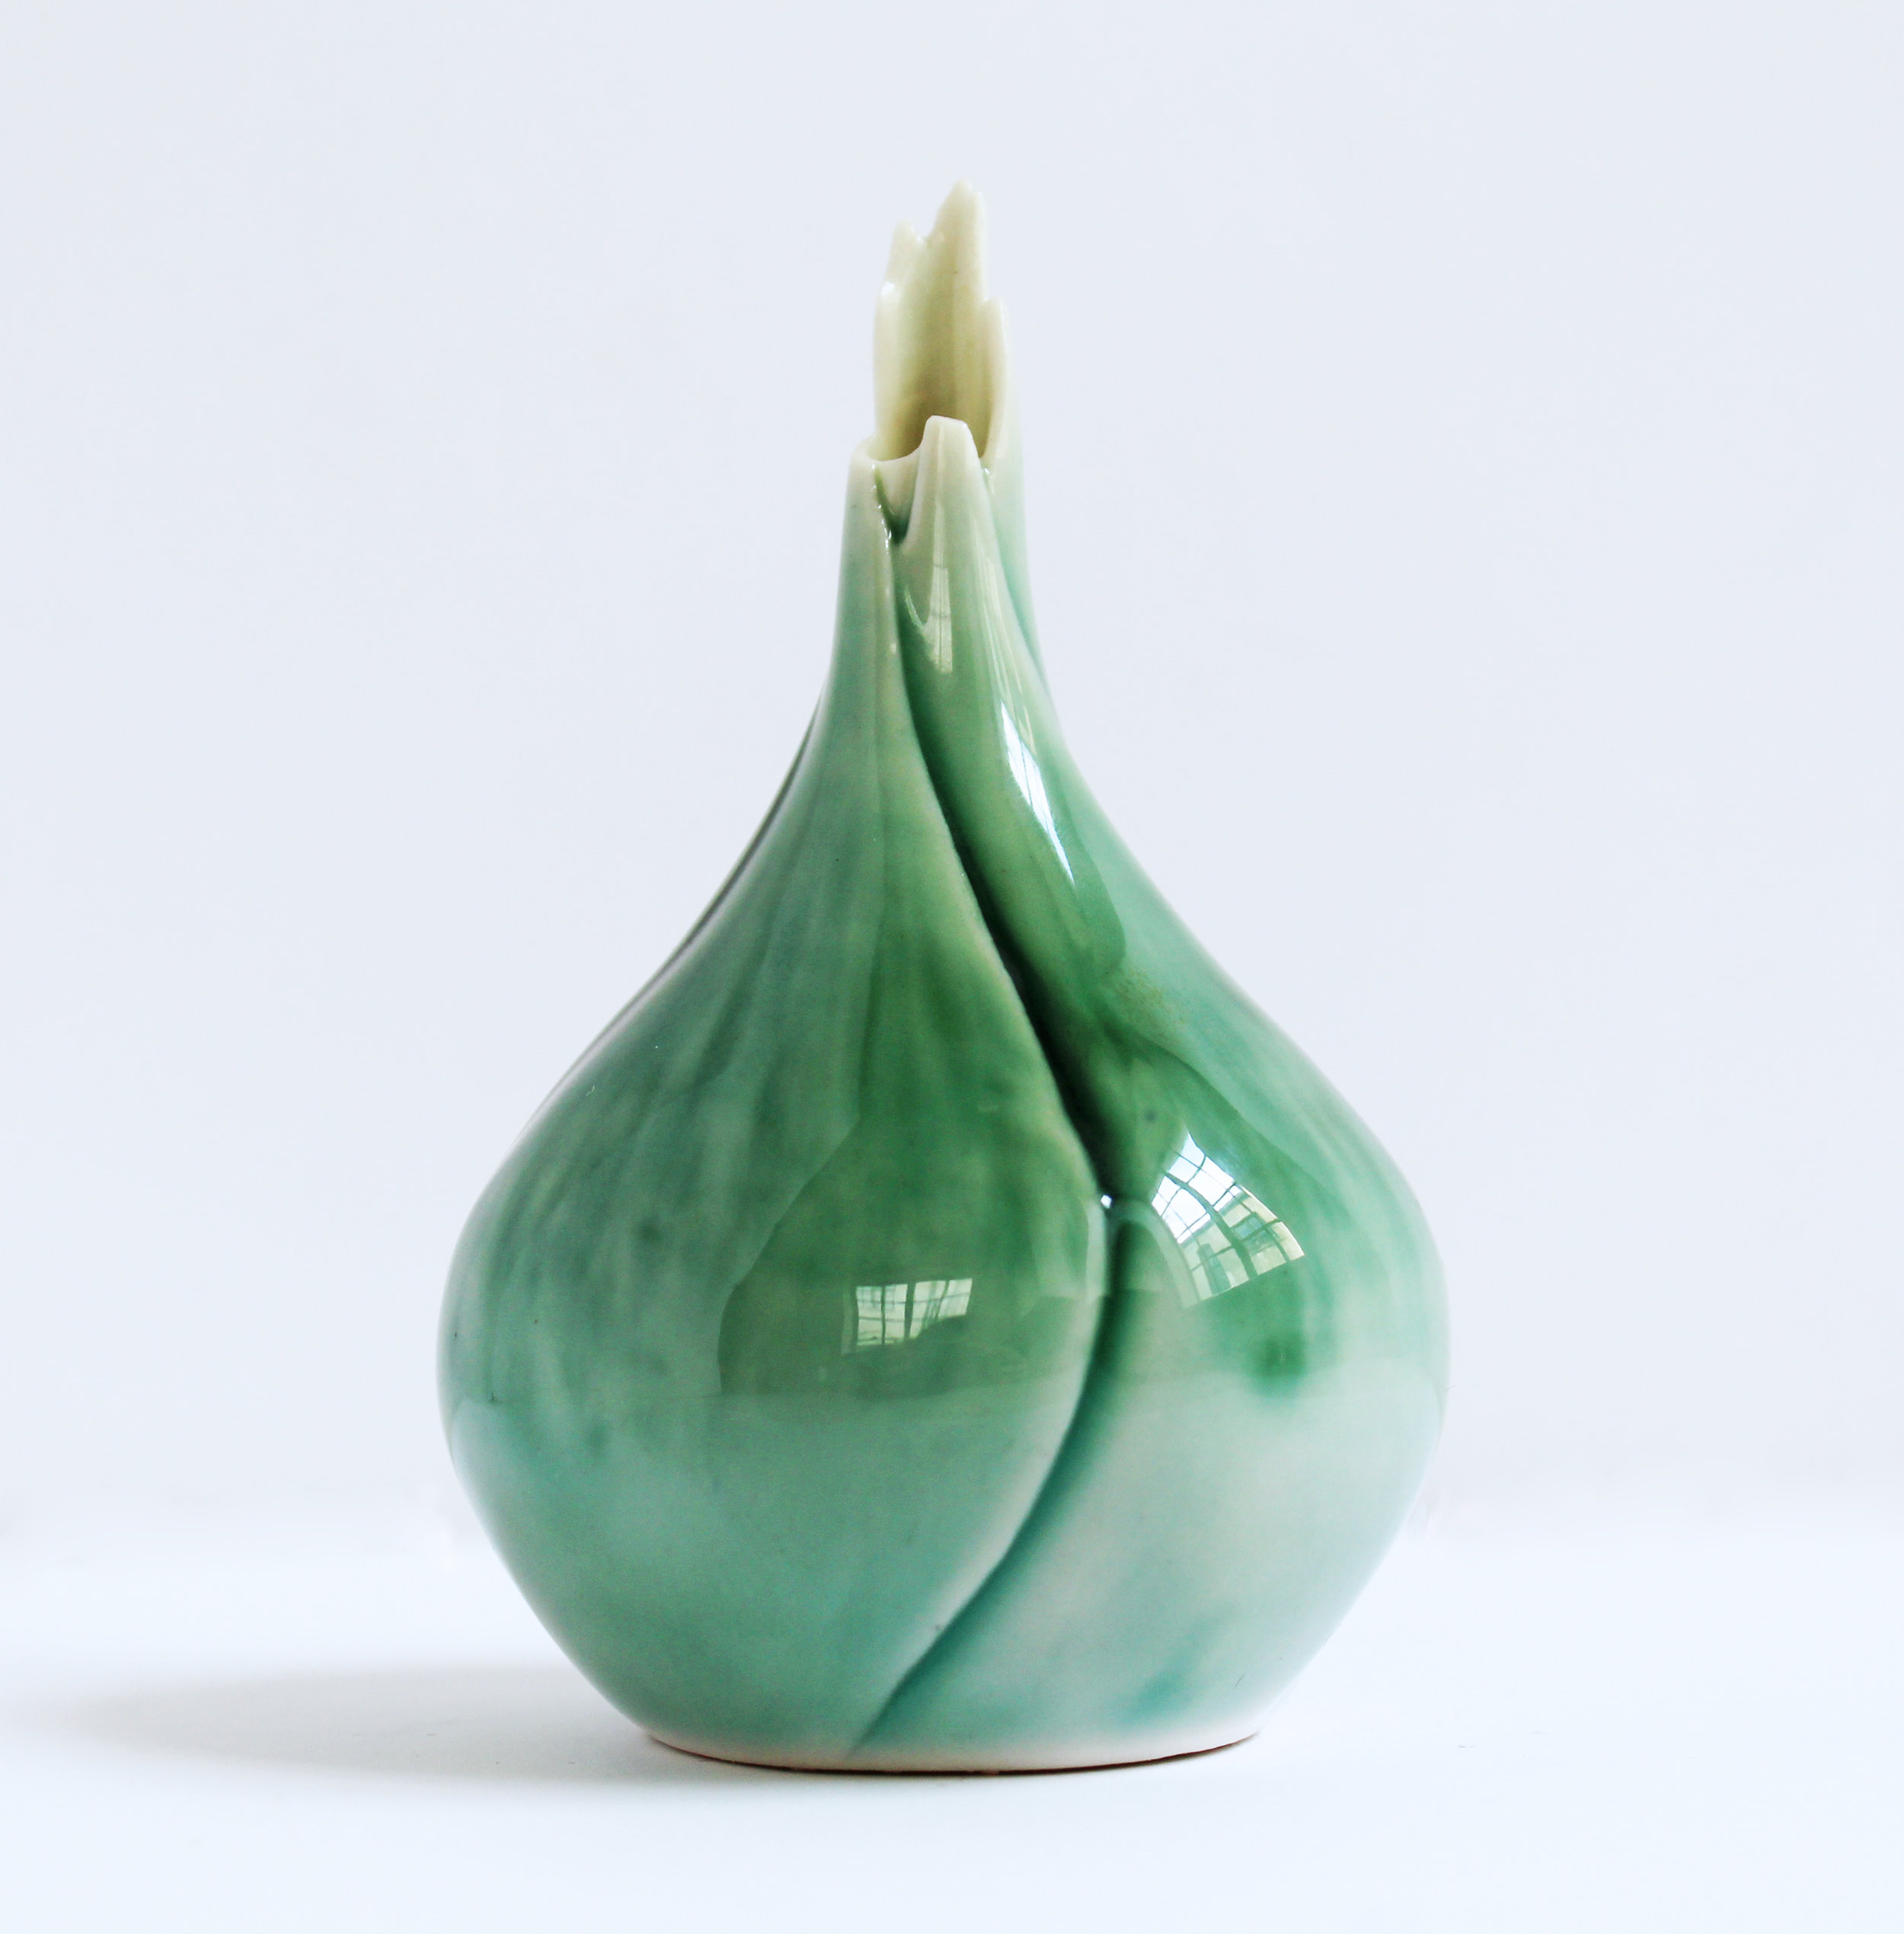 Carved Green Pistil Vessel with Organic Top